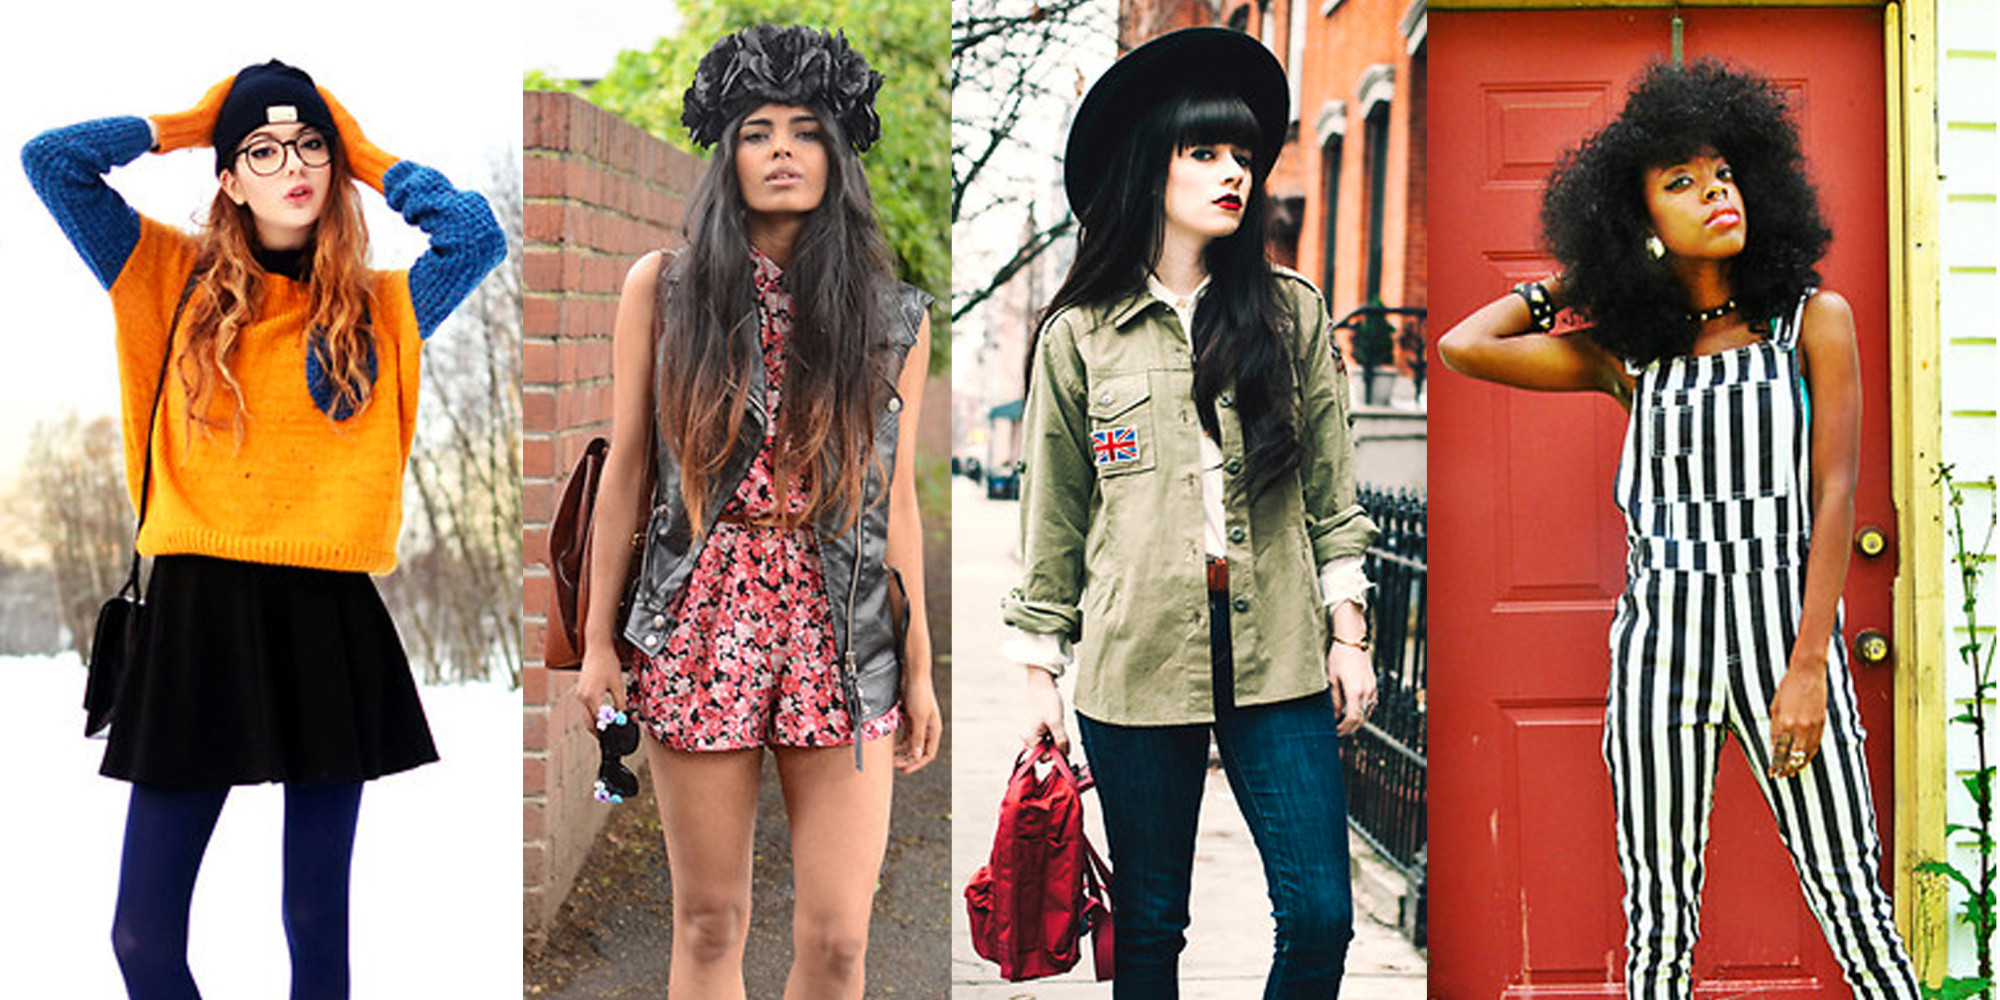 The 13 Most Hipster Items Of Clothing | HuffPost